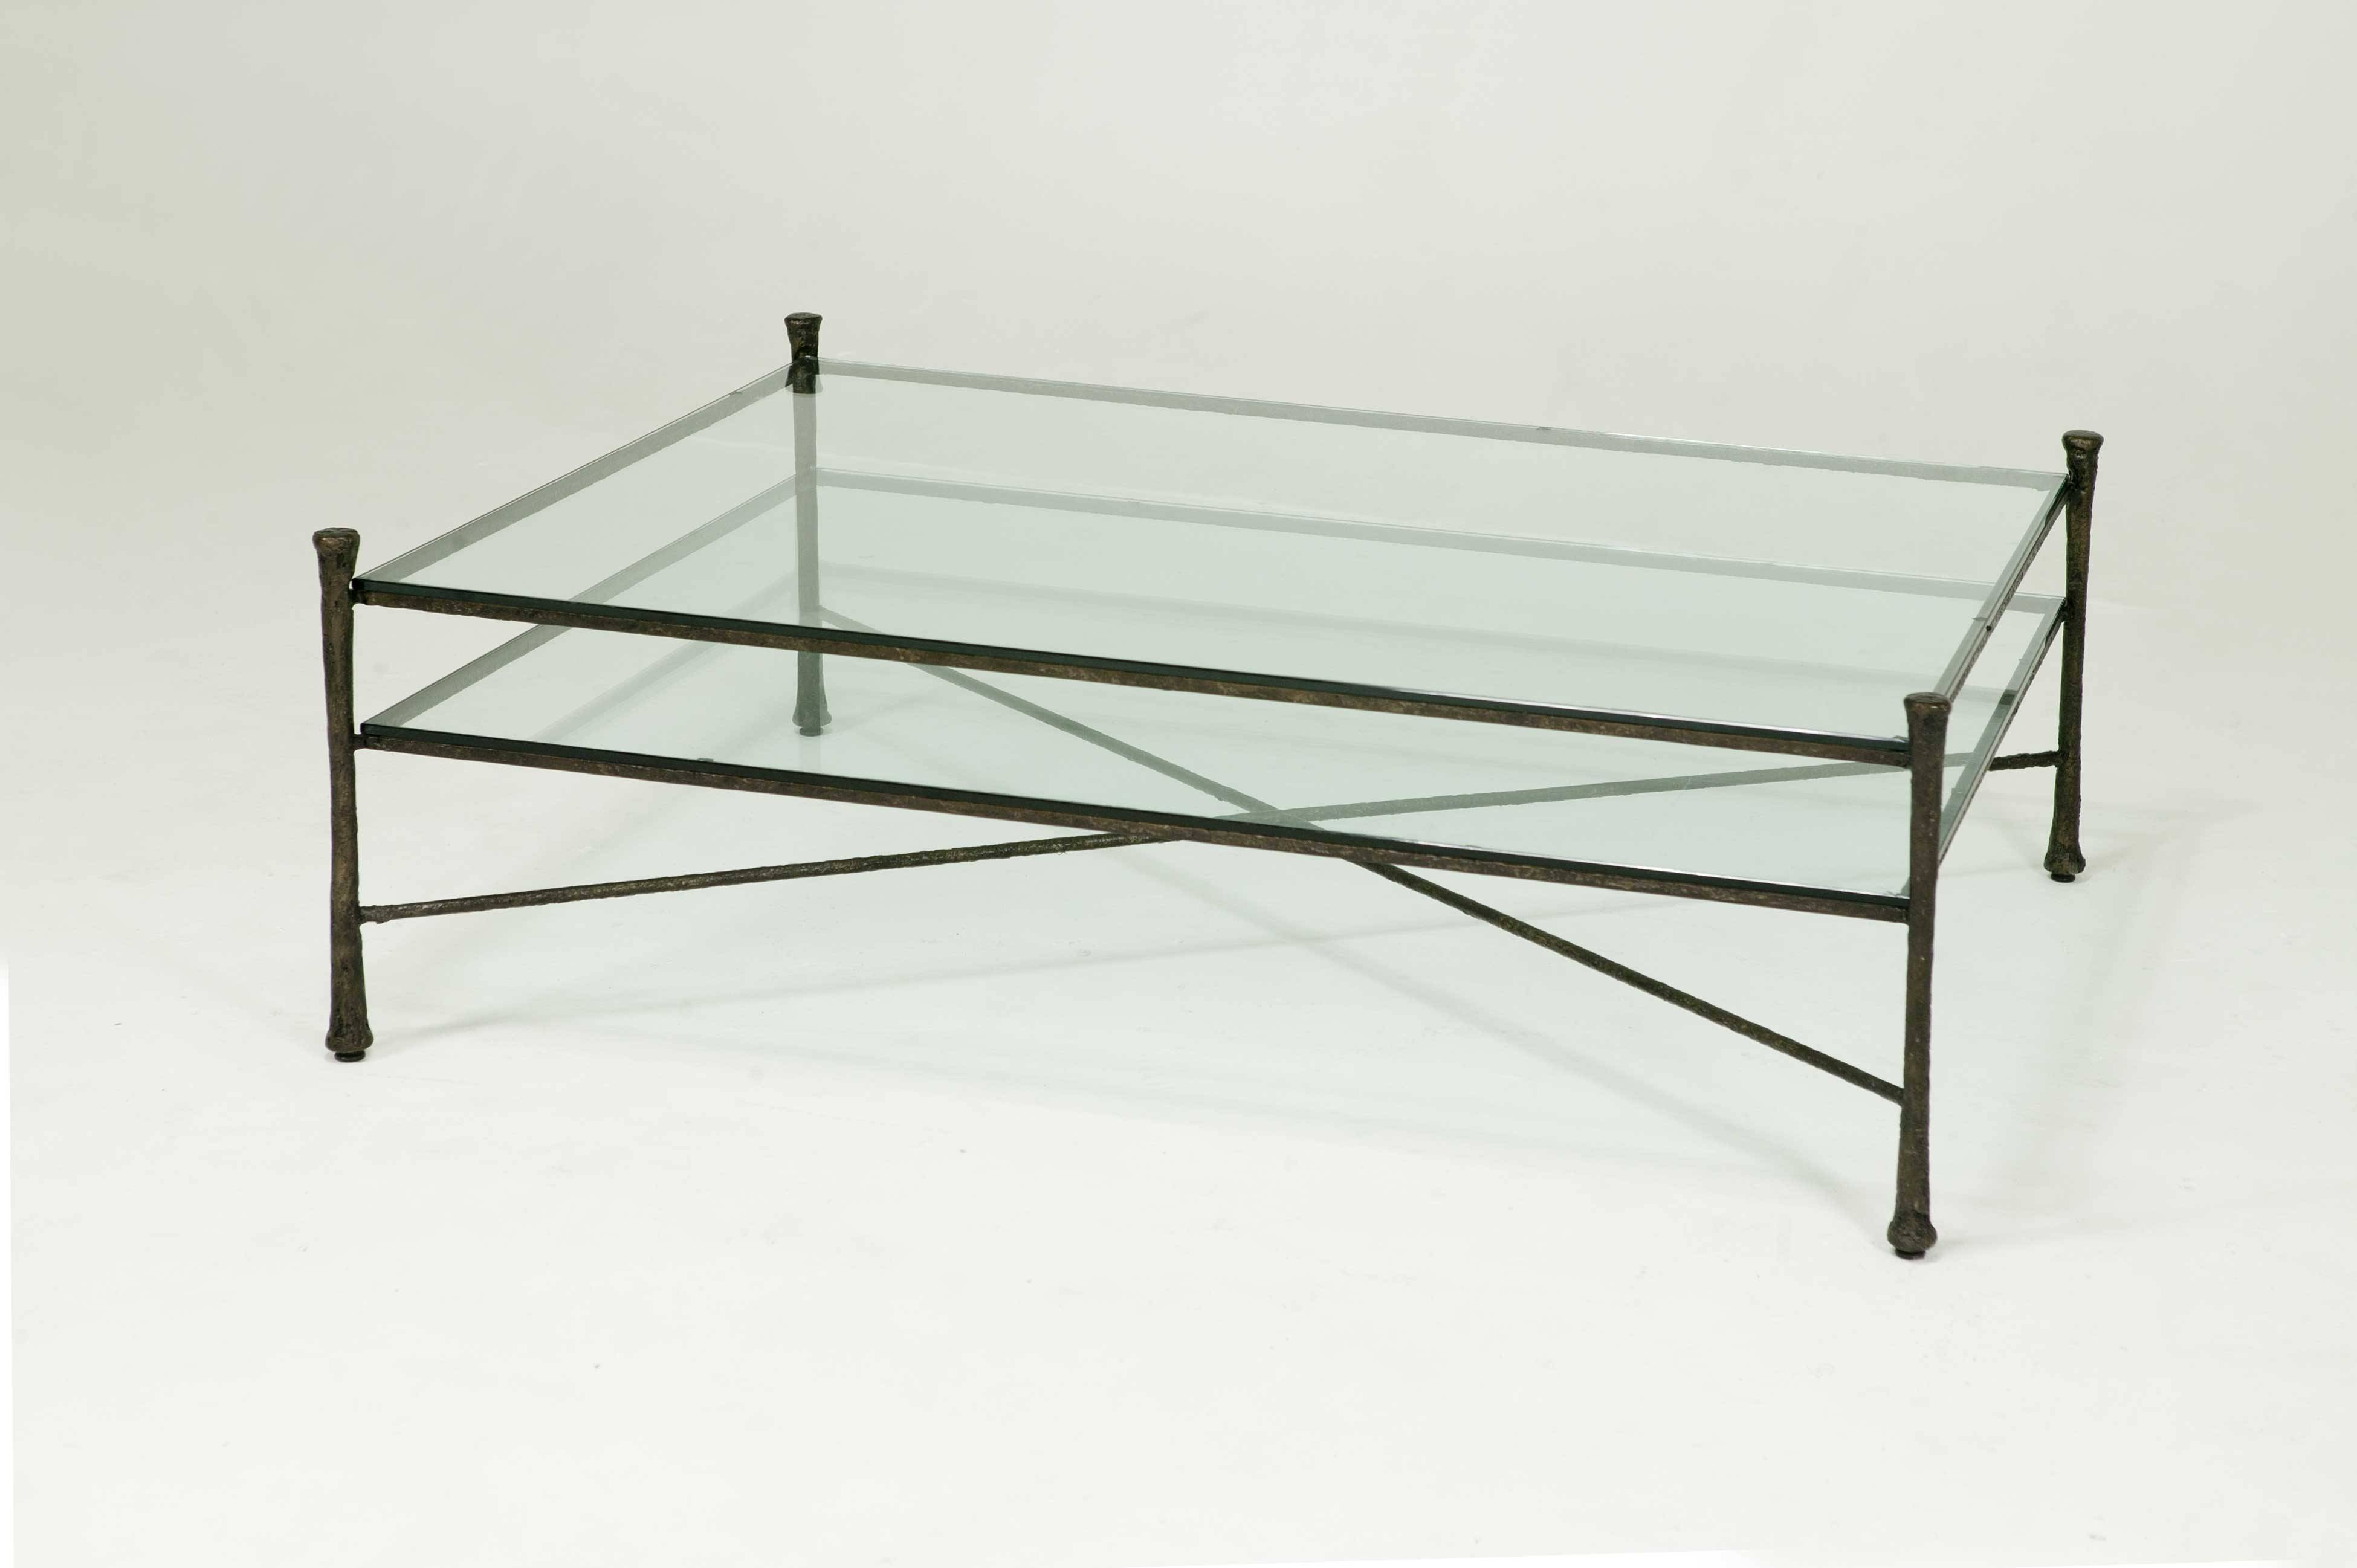 Glass Top Coffee Table With Metal Base | Coffee Tables Decoration intended for Coffee Tables Metal And Glass (Image 20 of 30)